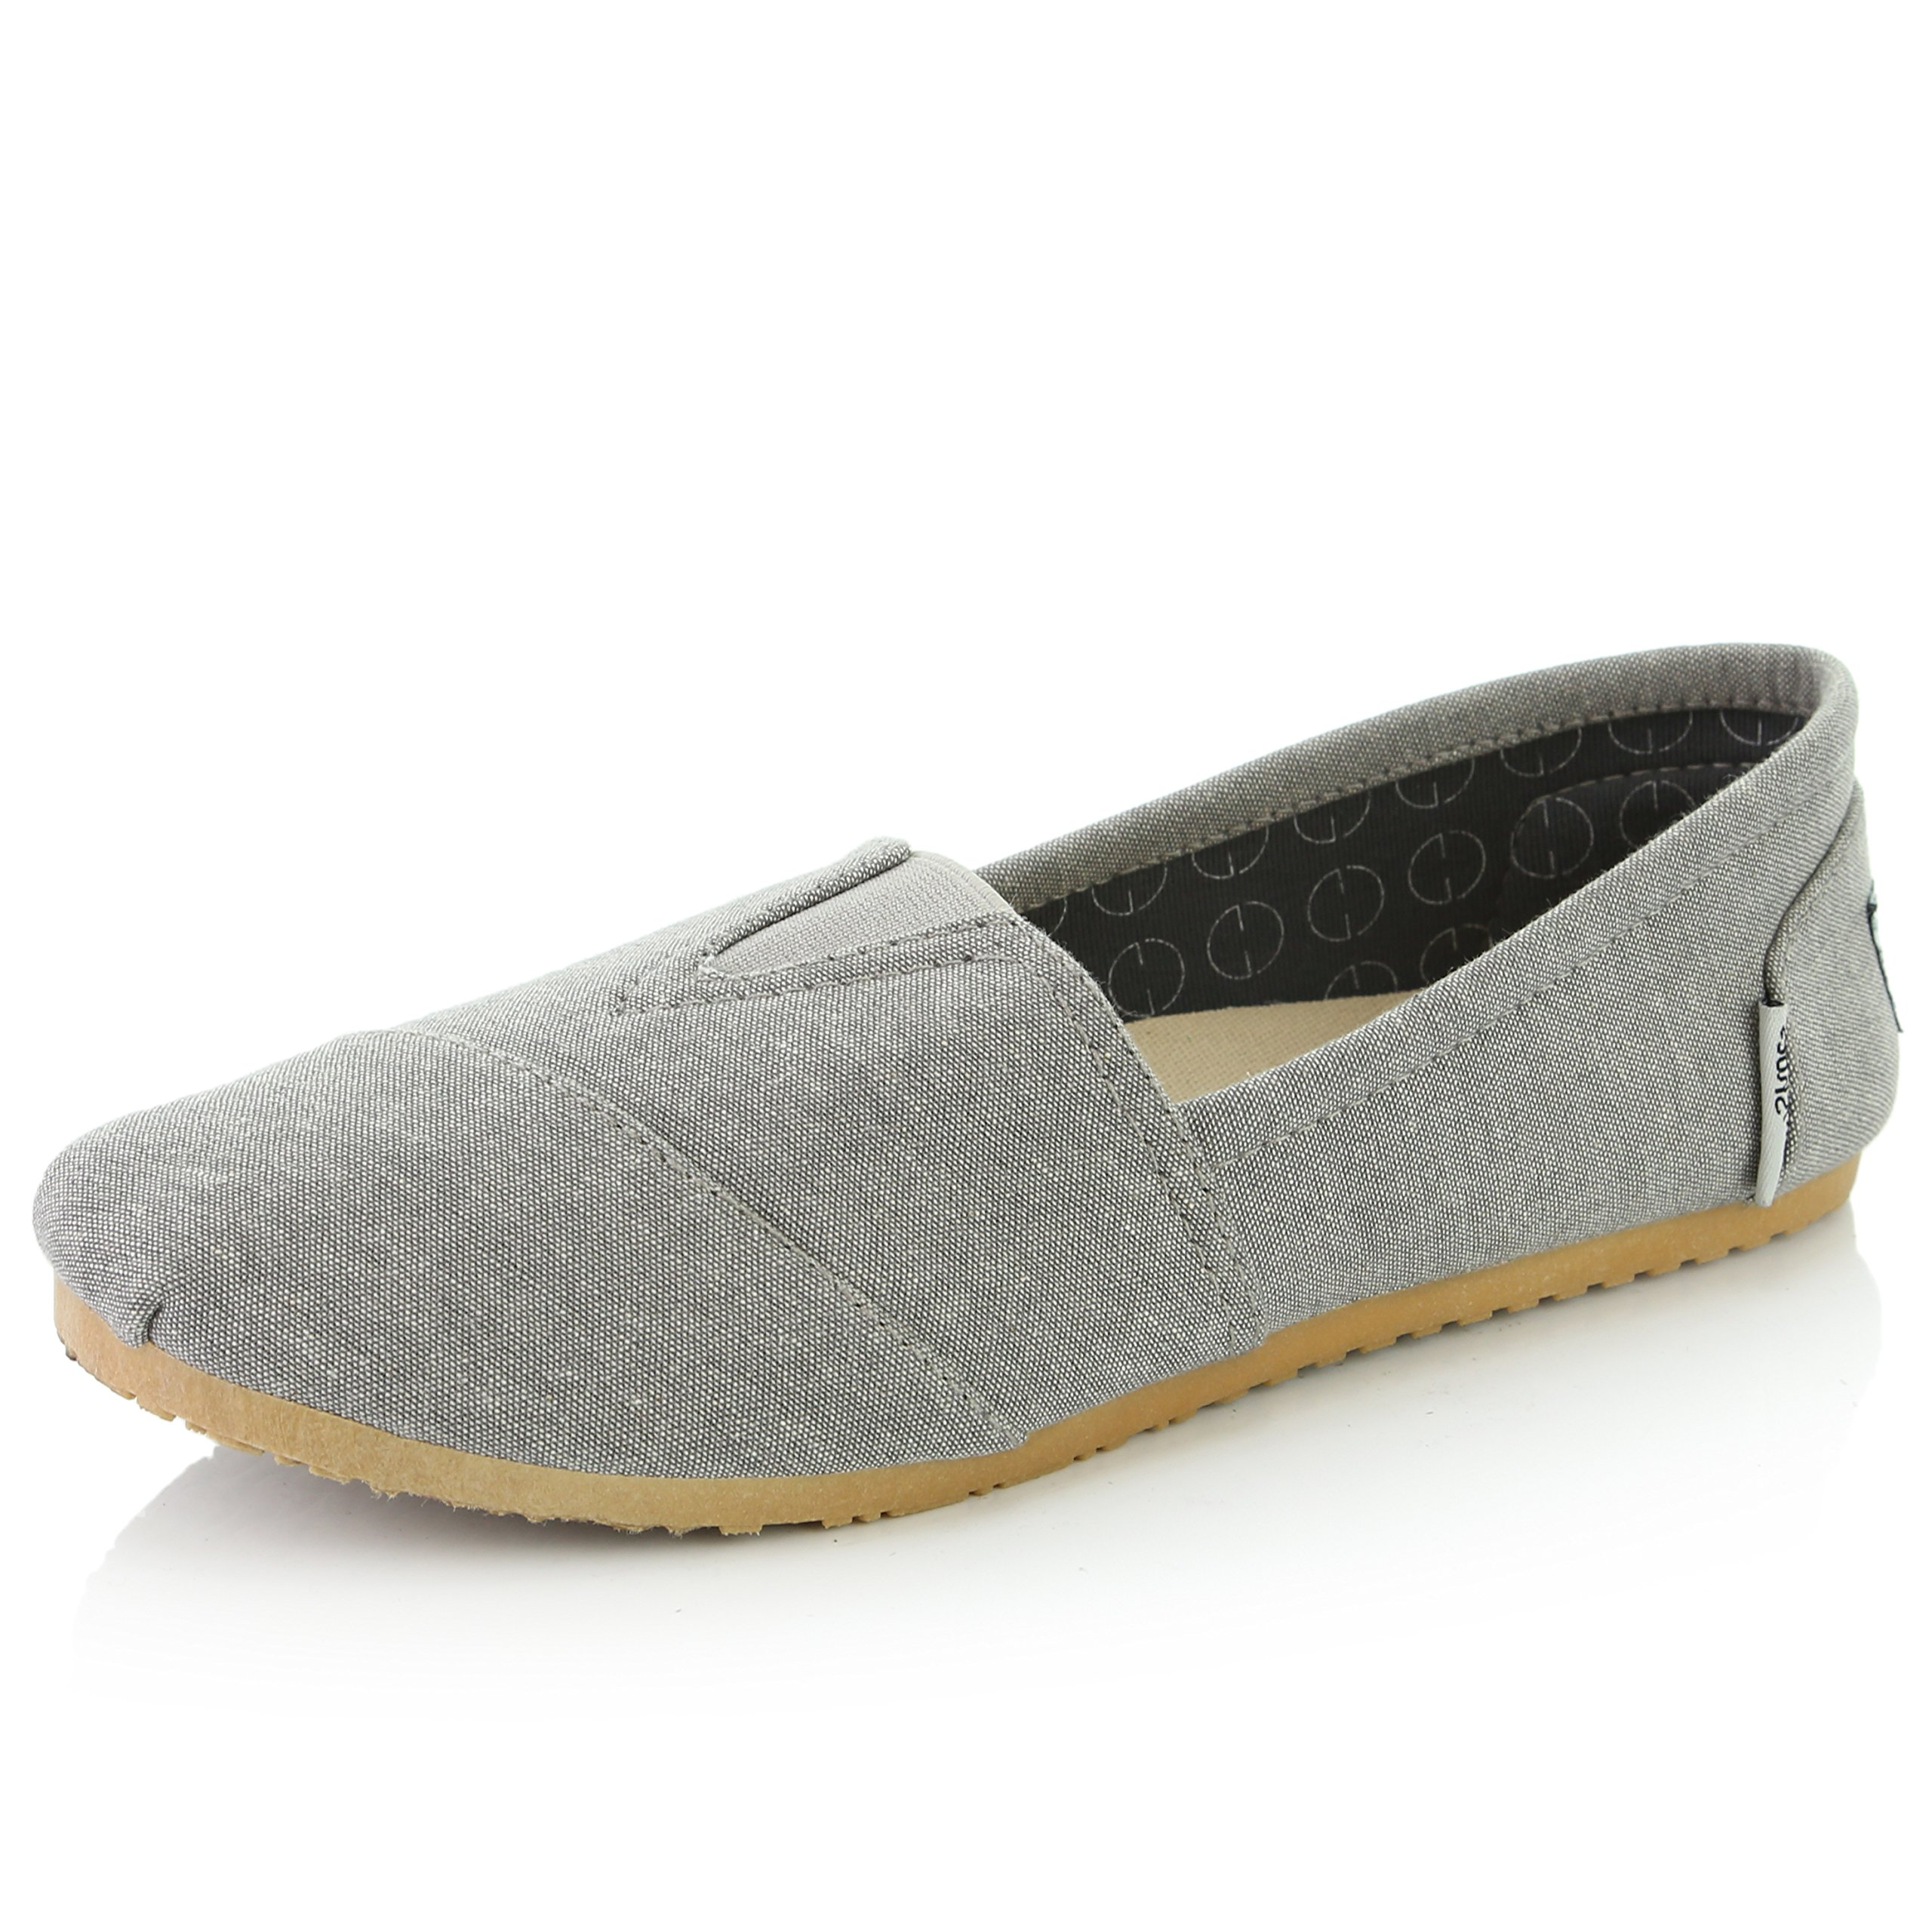 DailyShoes Women's Women Classic Flat Slip-On Comfort Loafer Sneaker Shoes with Raised Massage Surface Elastic Top Flats Shoe, Ash Grey Linen, 8 B(M) US